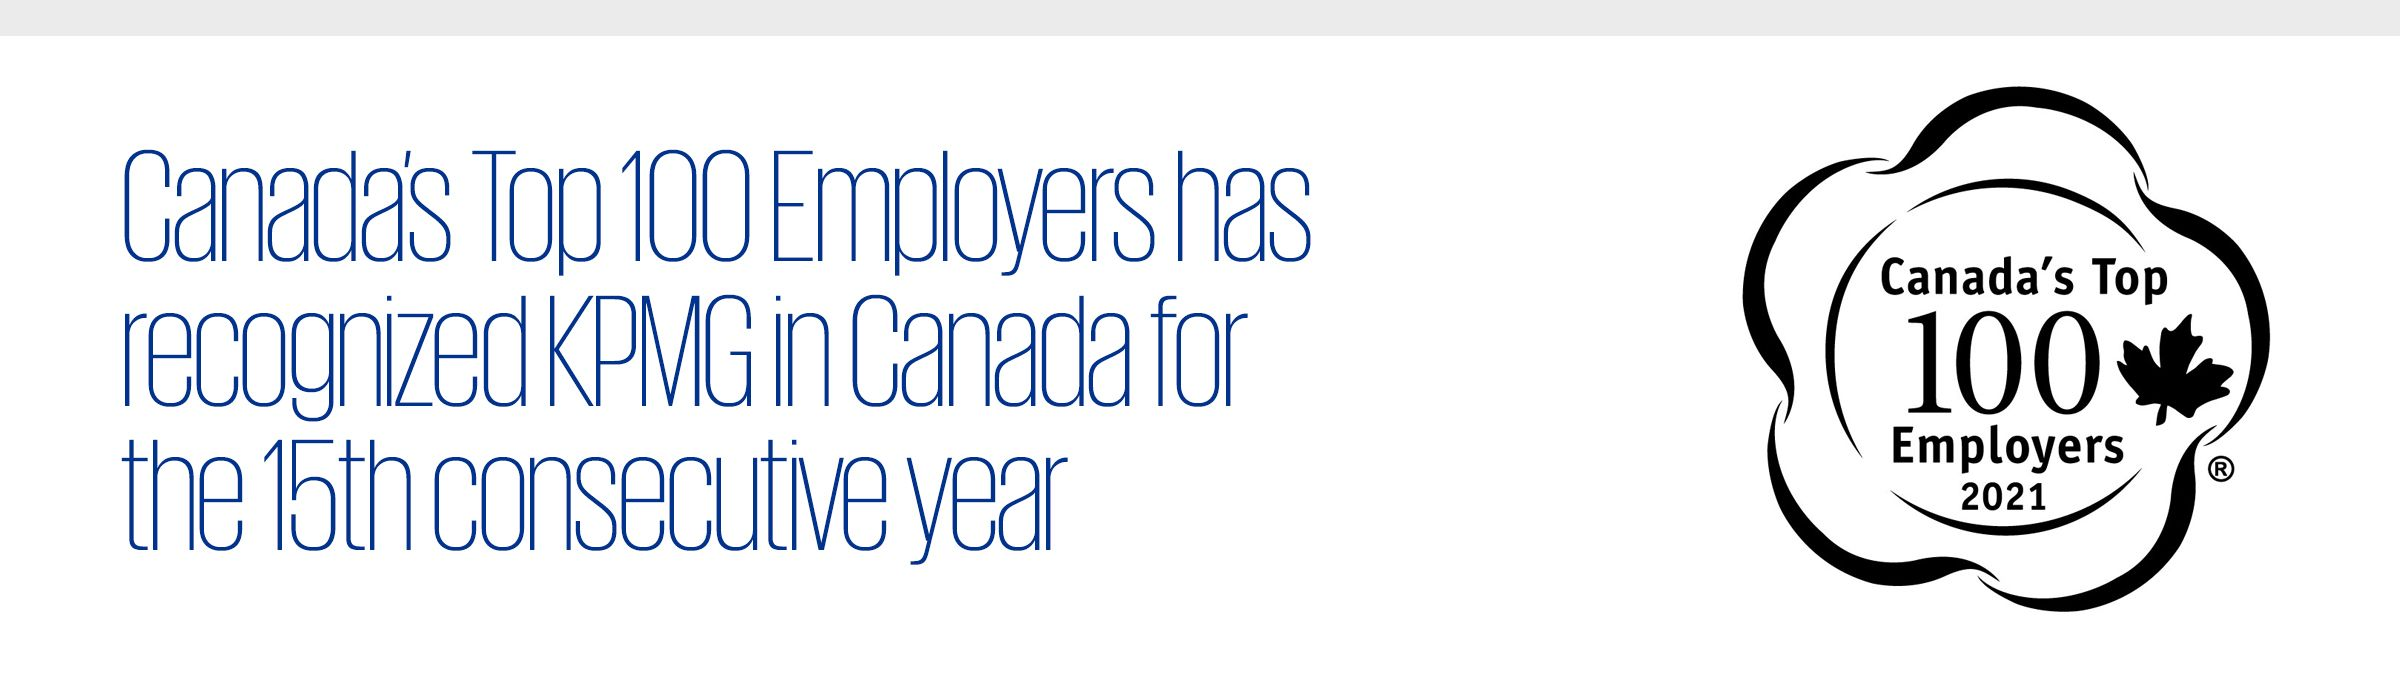 Canada's Top 100 Employers has recognized KPMG in Canada for the 15th consecutive year